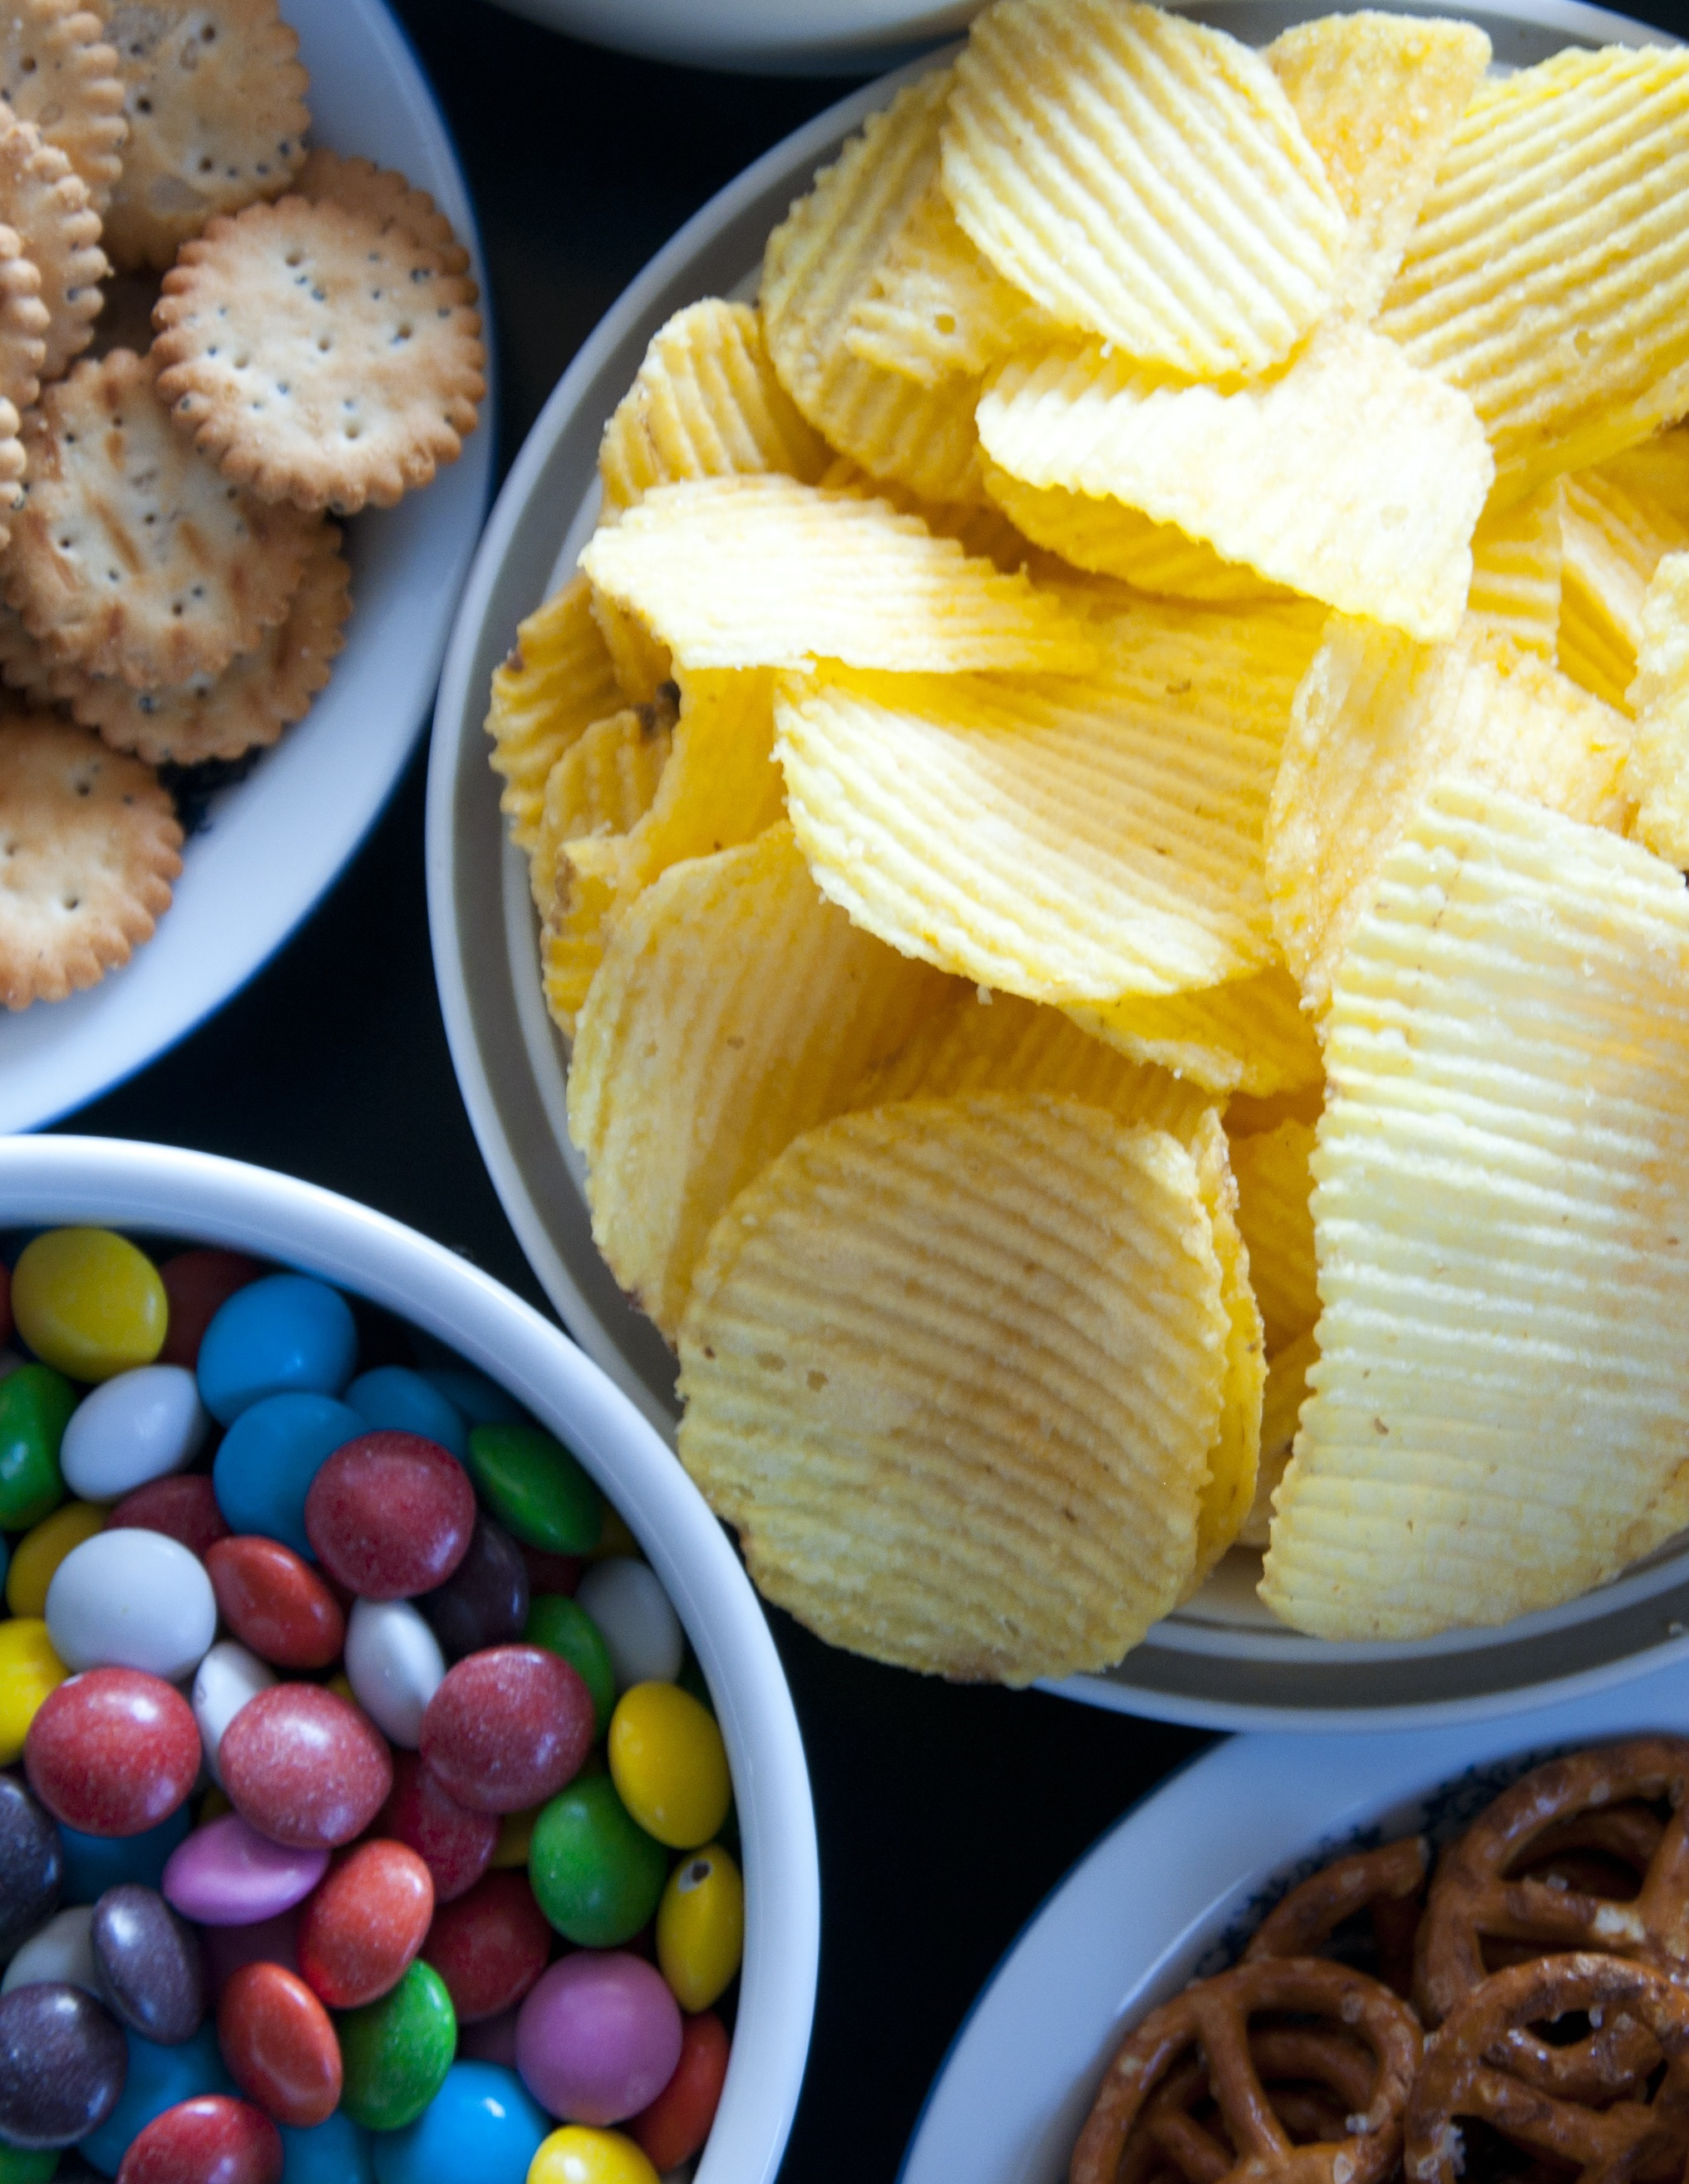 The Grocer Report: Snacking image